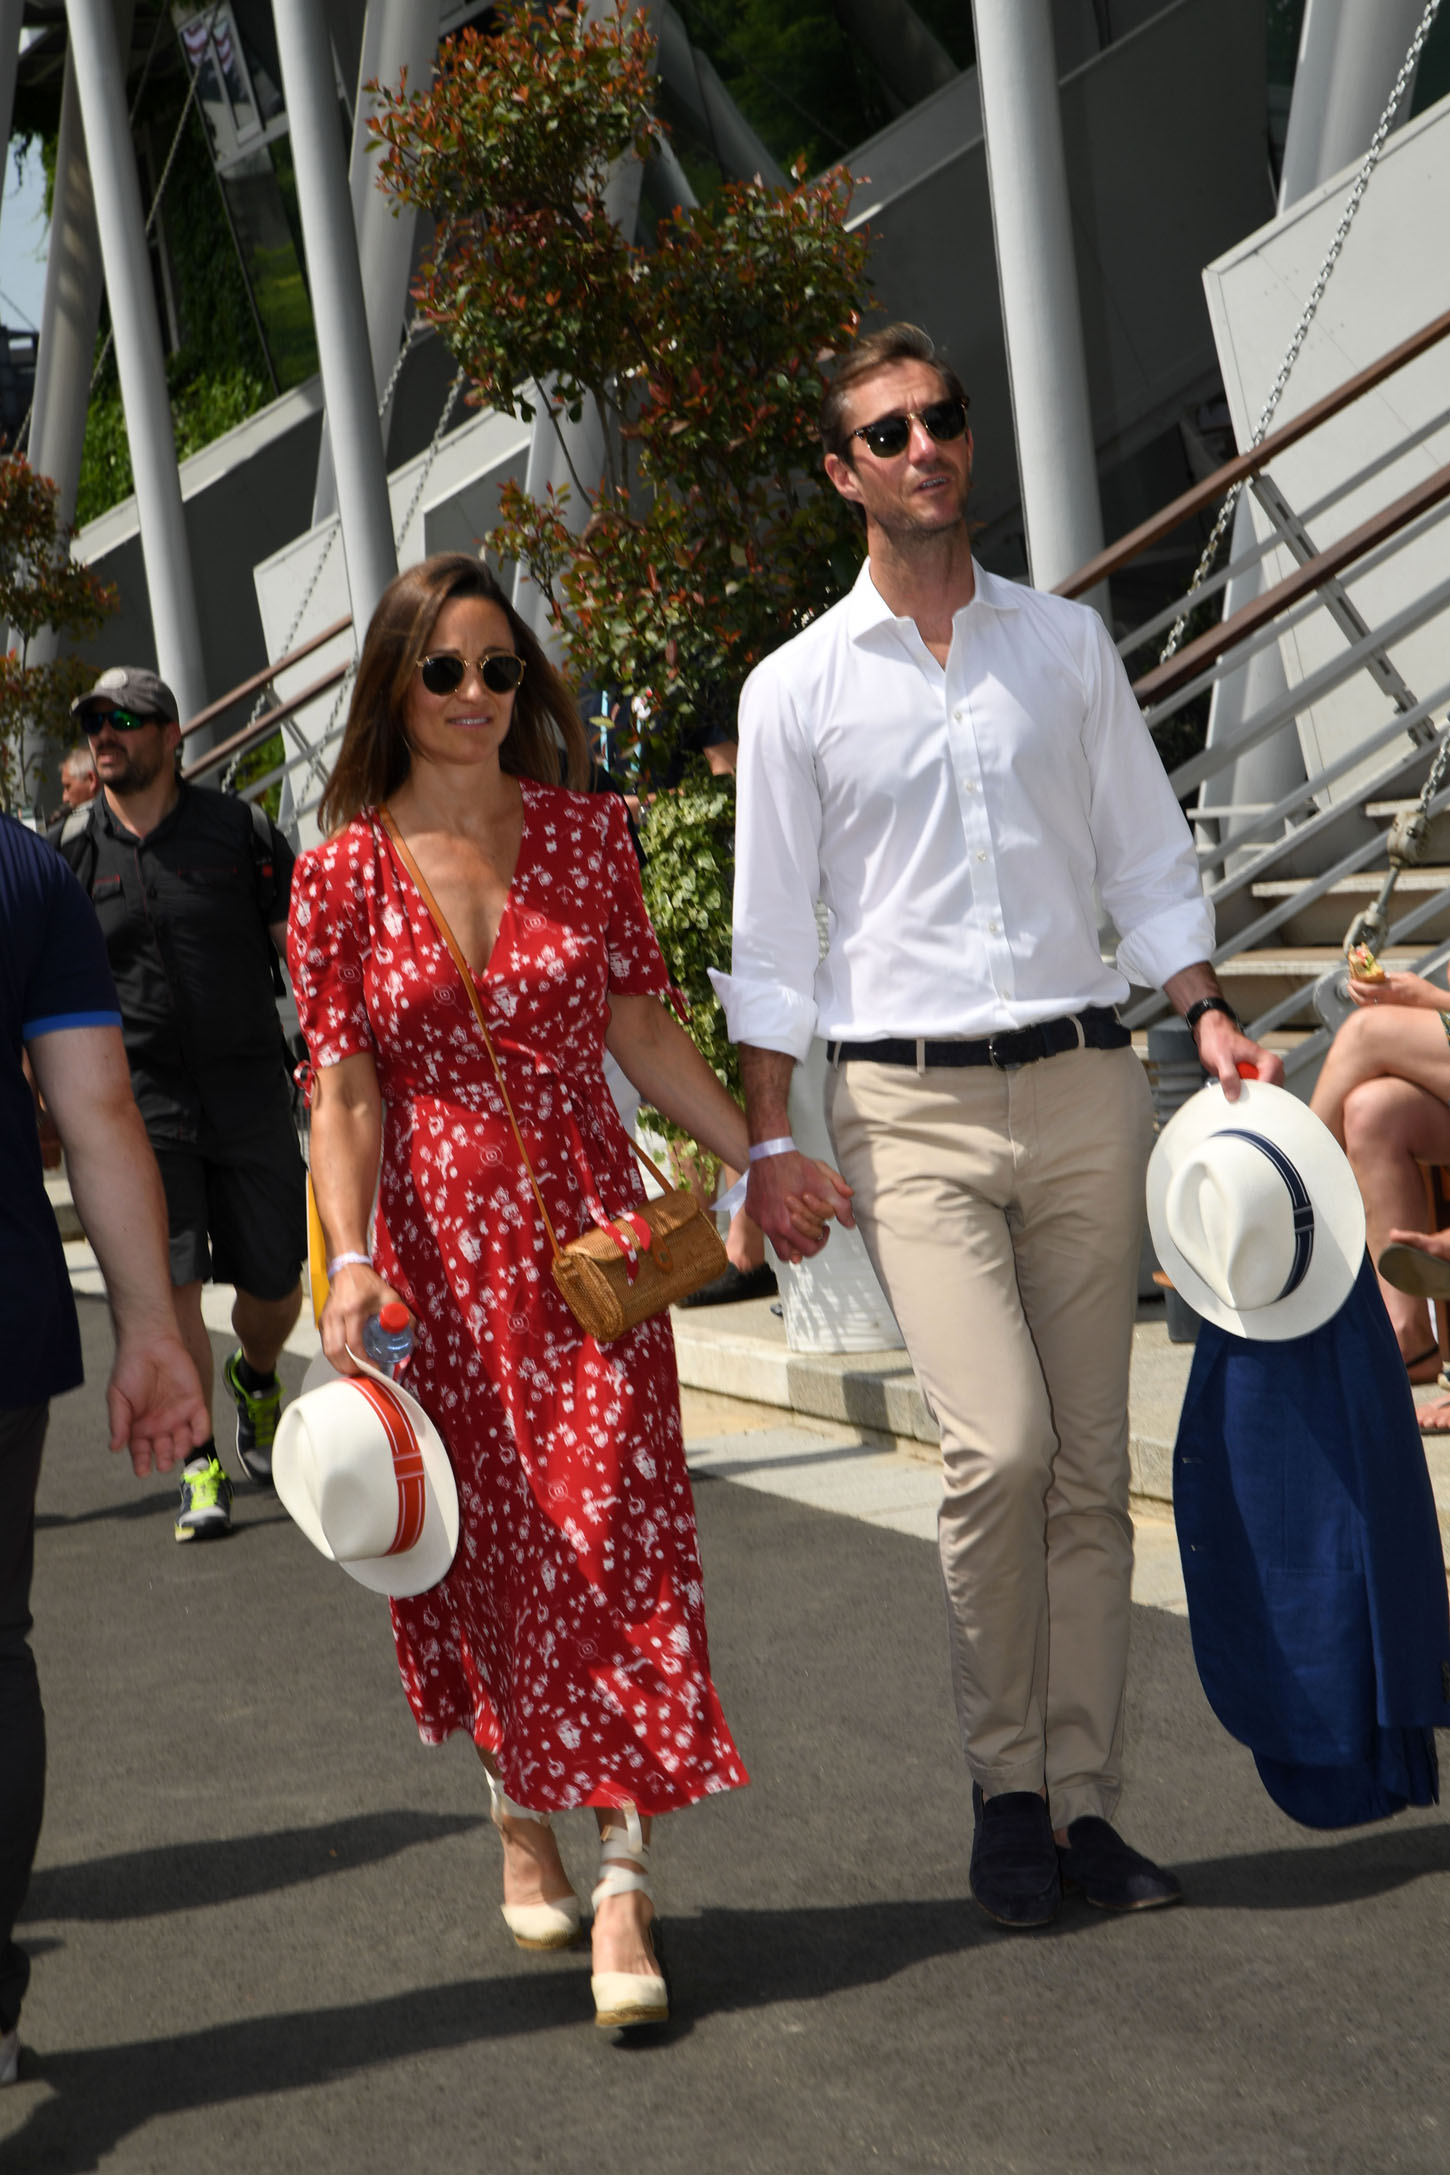 Pippa Middleton and husband James Matthews attend Day One of the 2018 French Open at Roland Garros stadium on May 26, 2018 in Paris, France <P> Pictured: Pippa Middleton and James Matthews <B>Ref: SPL1703115  270518  </B><BR/> Picture by: Allpix / Splash News<BR/> </P><P> <B>Splash News and Pictures</B><BR/> Los Angeles:310-821-2666<BR/> New York:212-619-2666<BR/> London:870-934-2666<BR/> <span id=